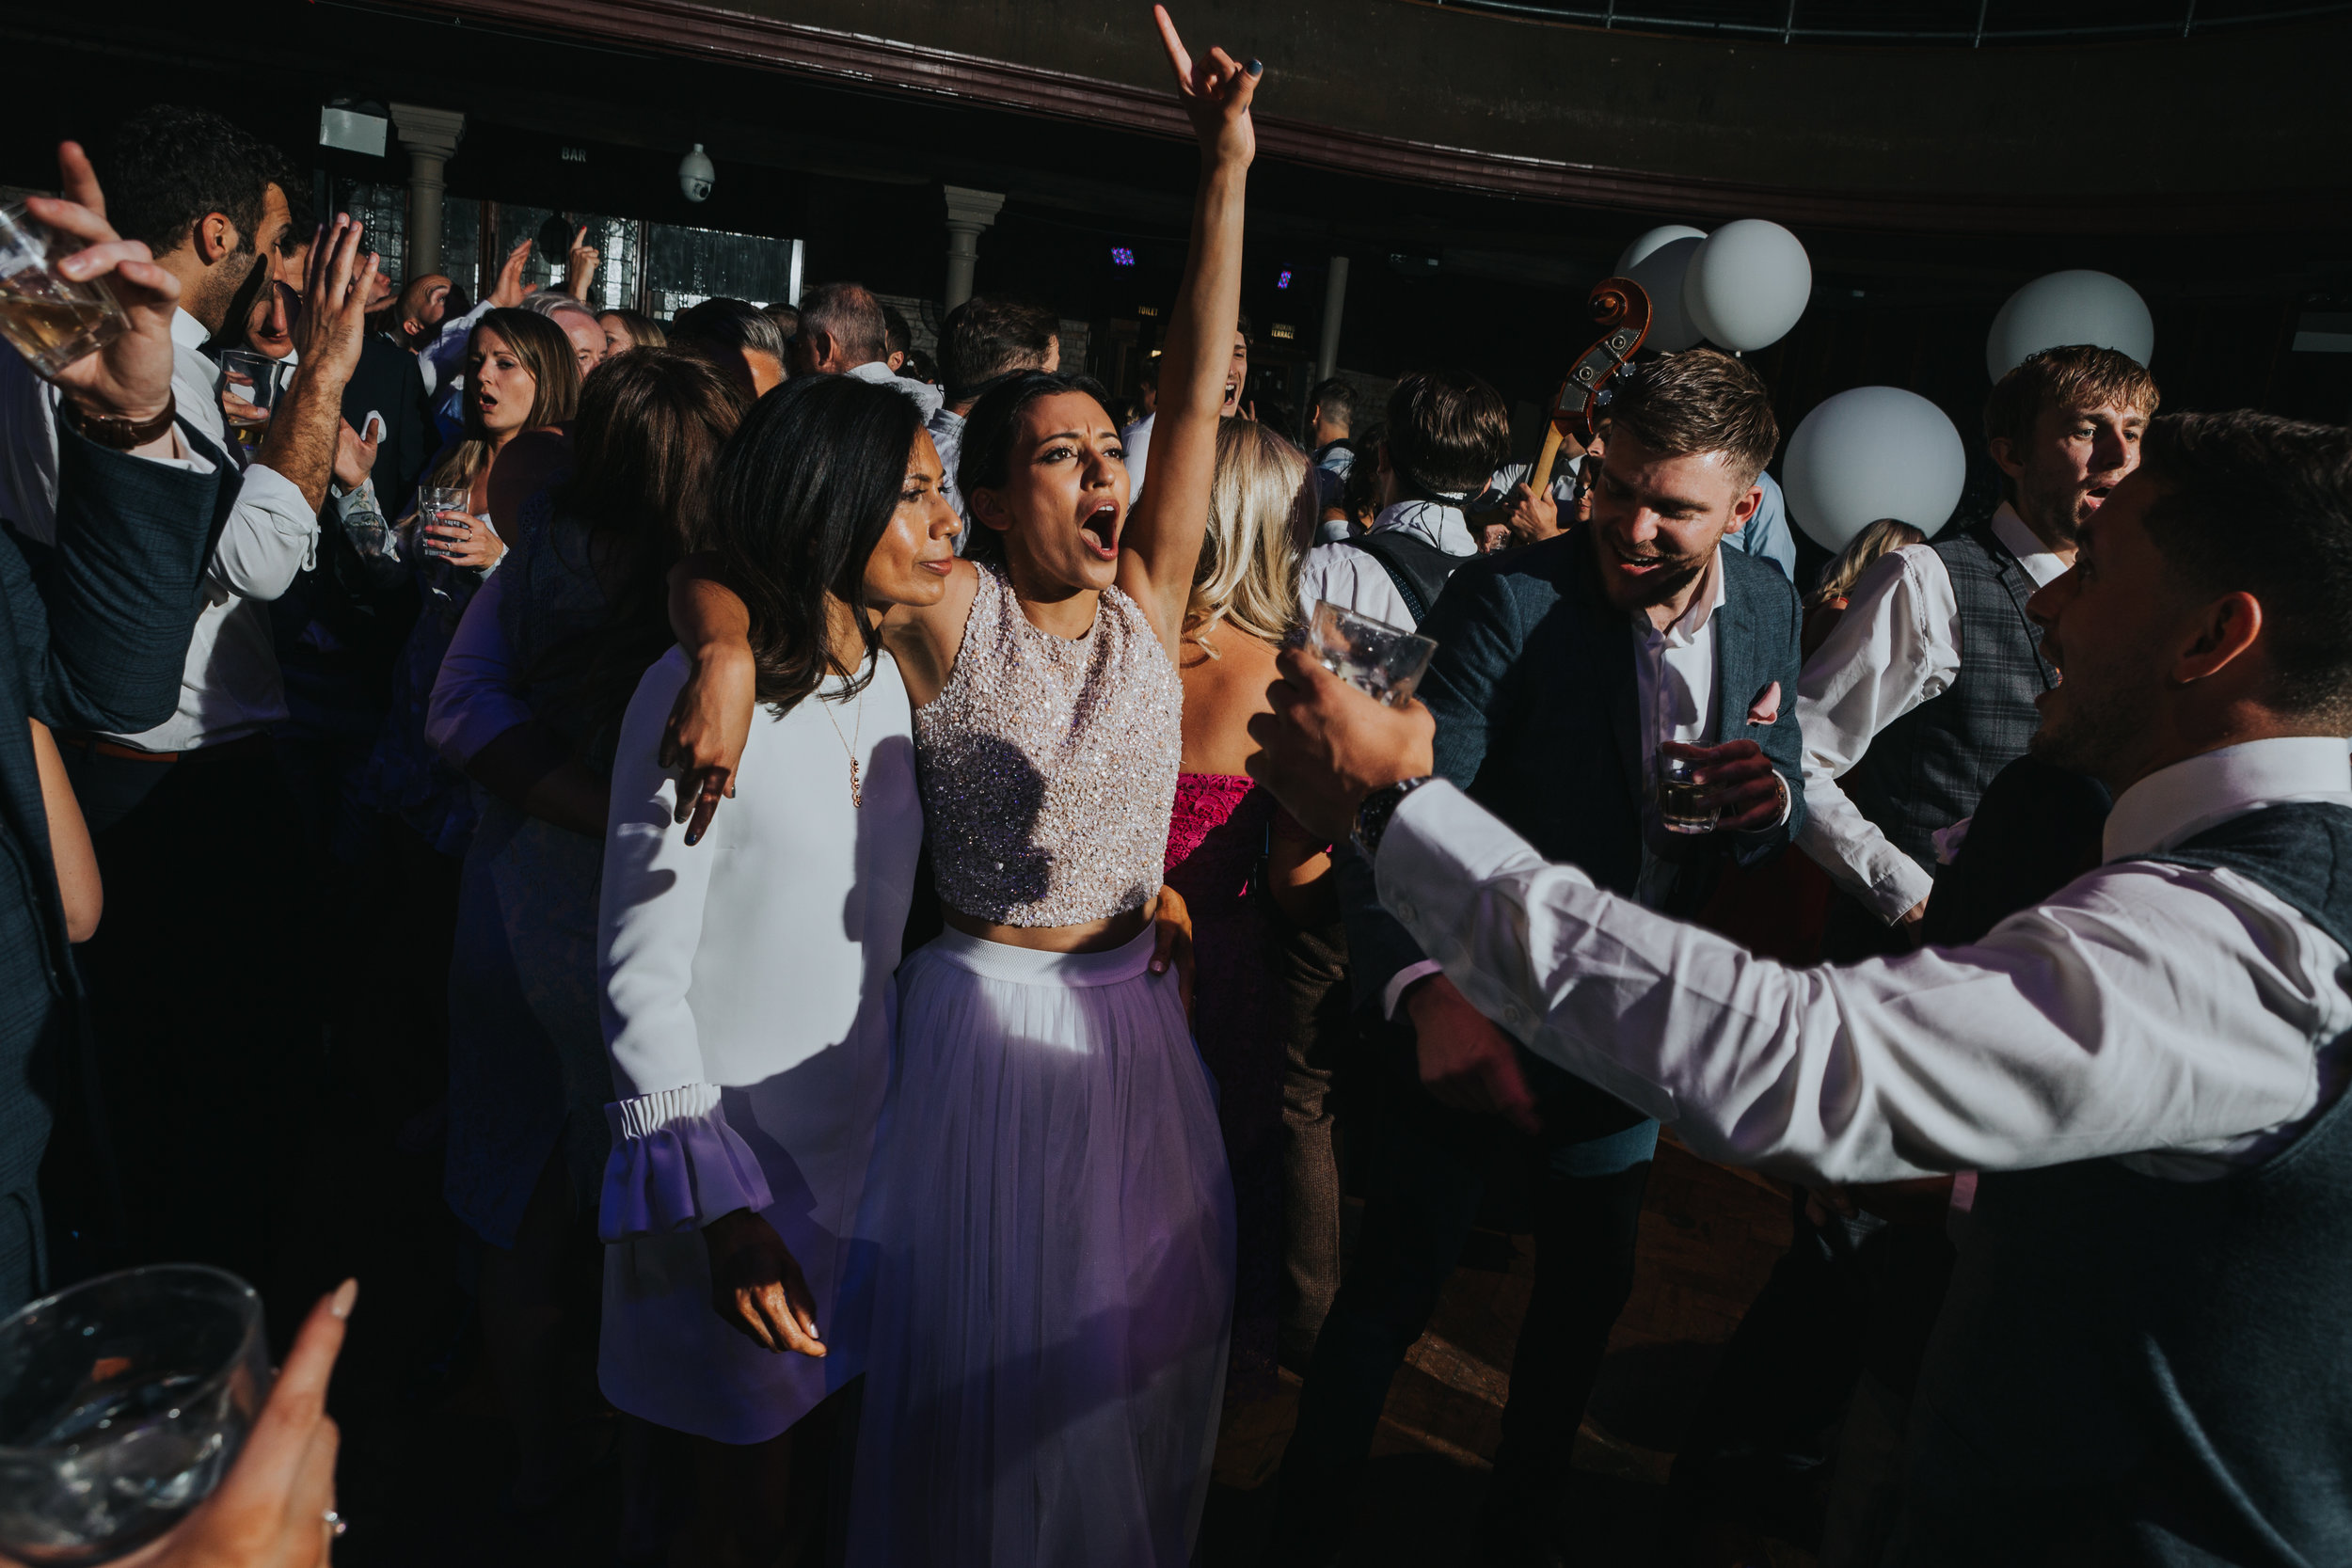 Bride raises her hand in the air singing to the music.